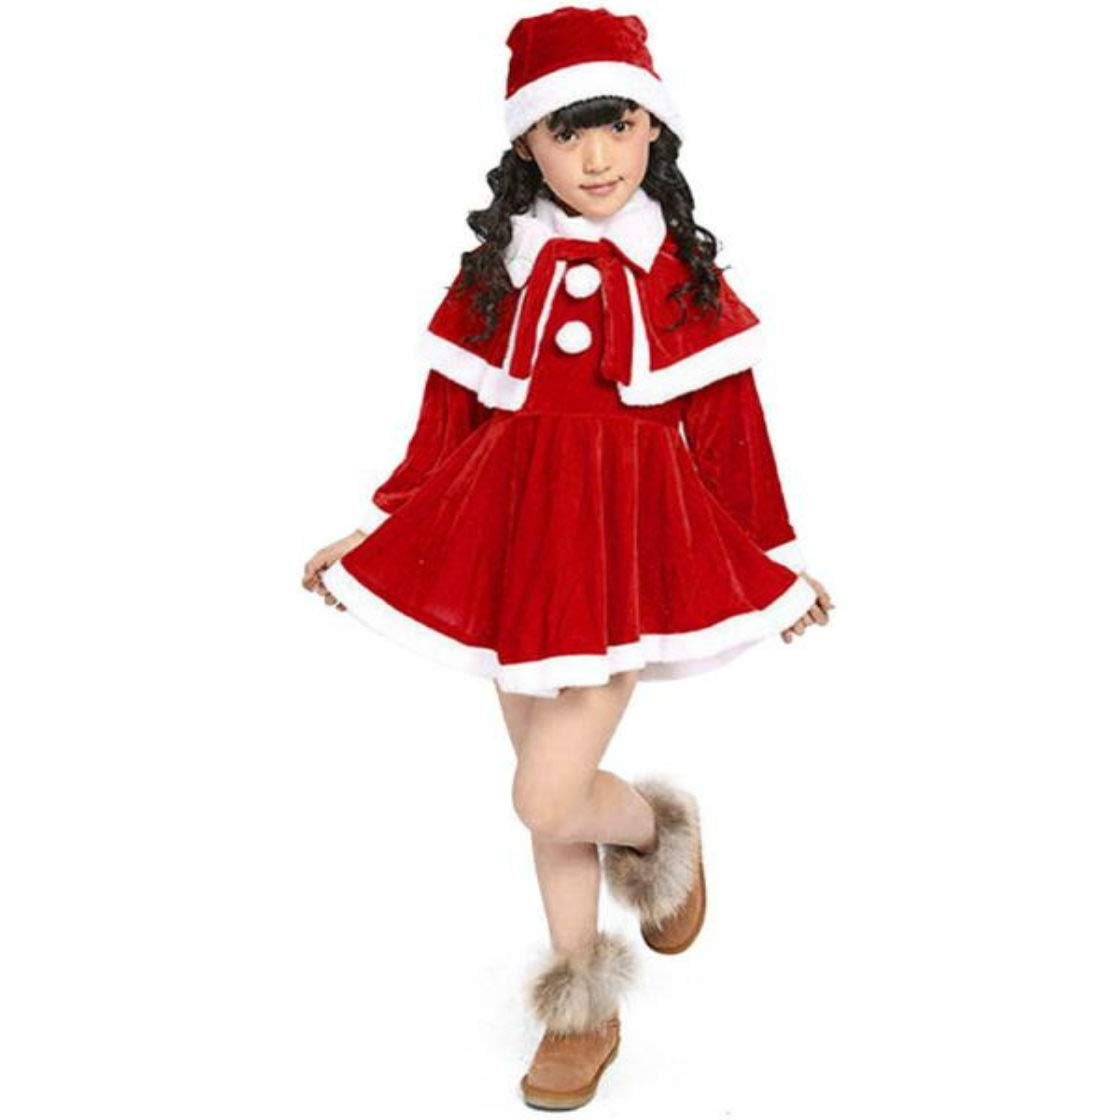 3ebeb4da8378c Christmas Fancy Dress Outfits For Babies